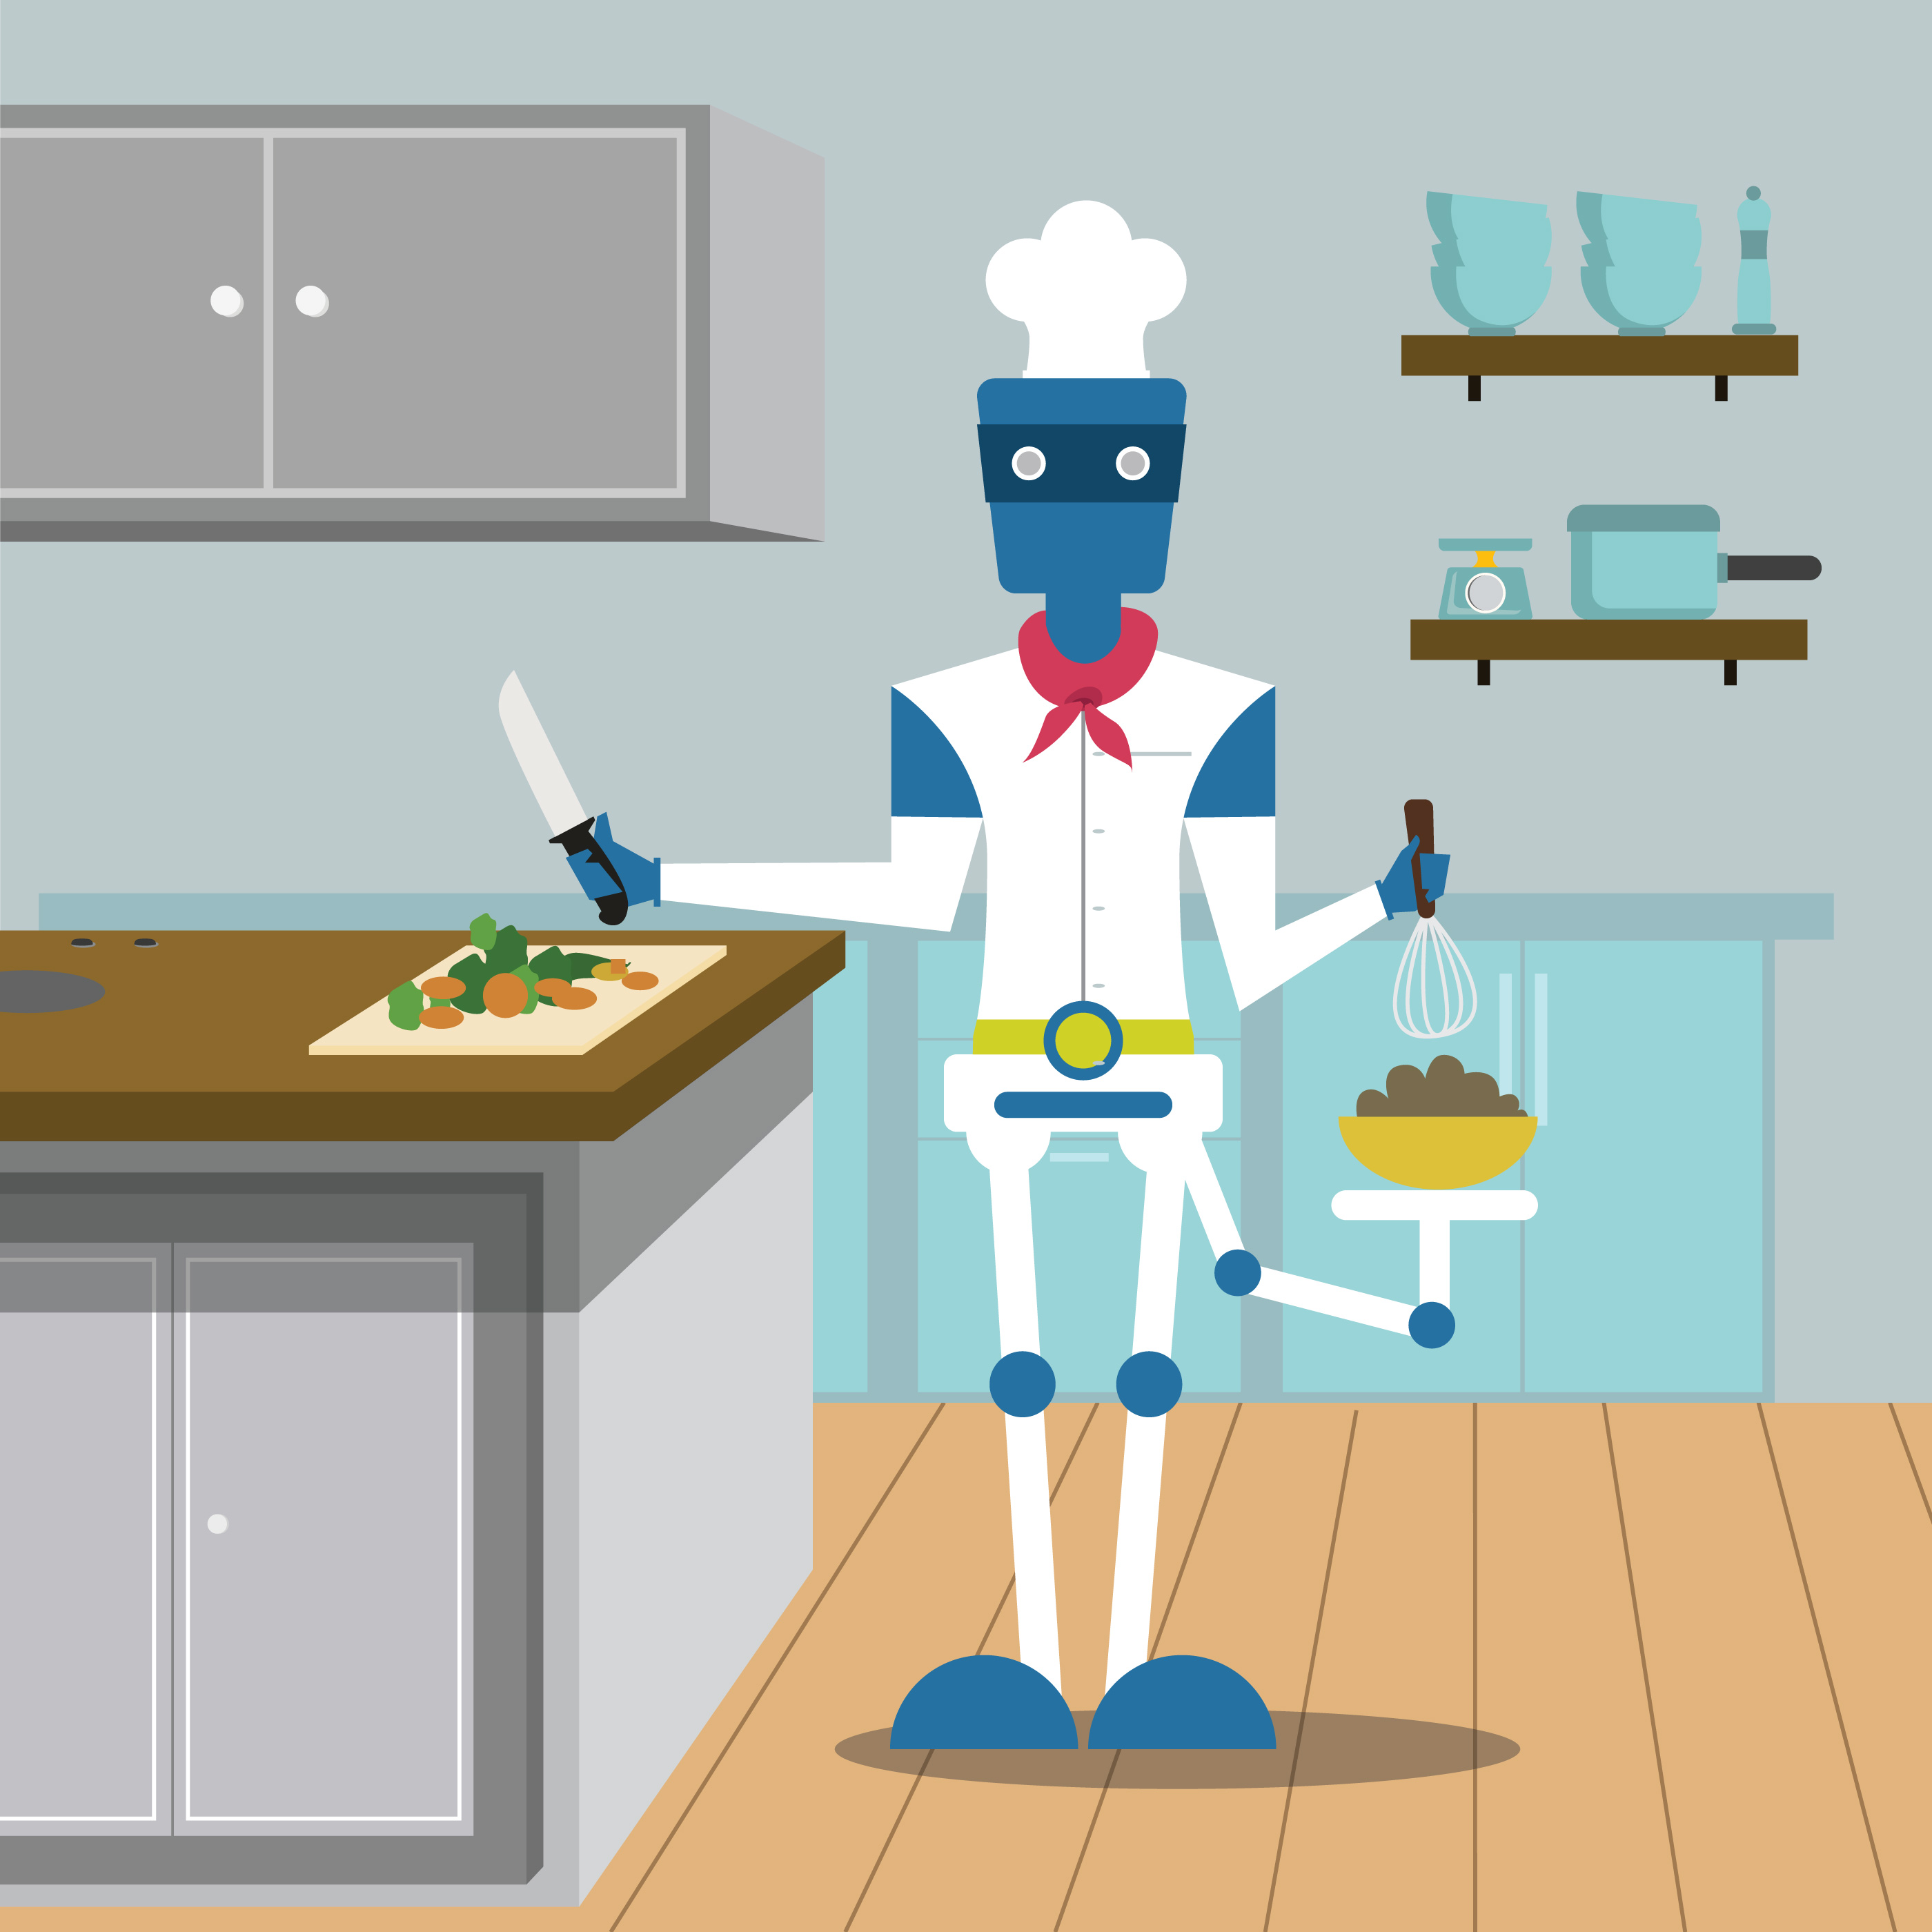 A Robot Chef - Download Free Vector Art, Stock Graphics & Images